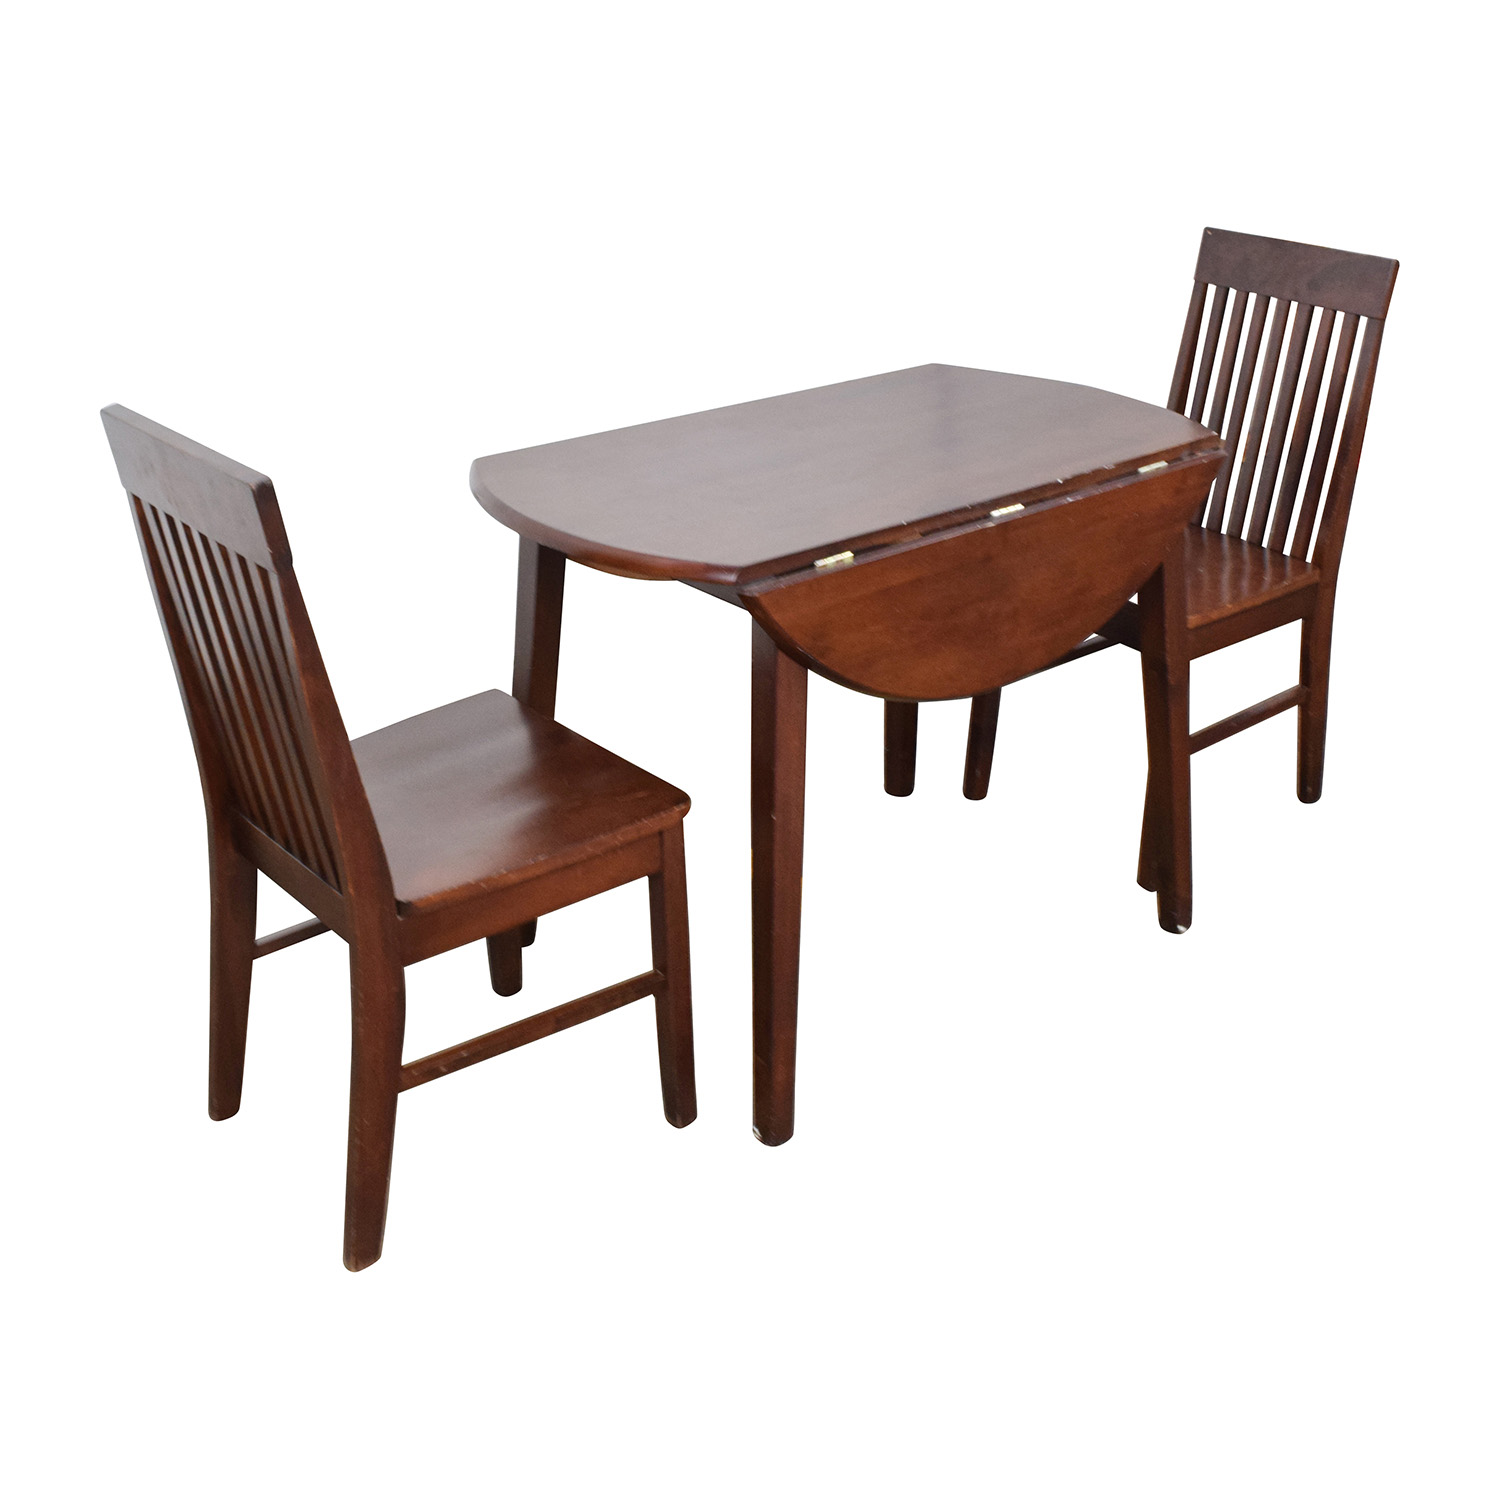 60 off round dining table with folding sides and chairs tables - Dining table images ...